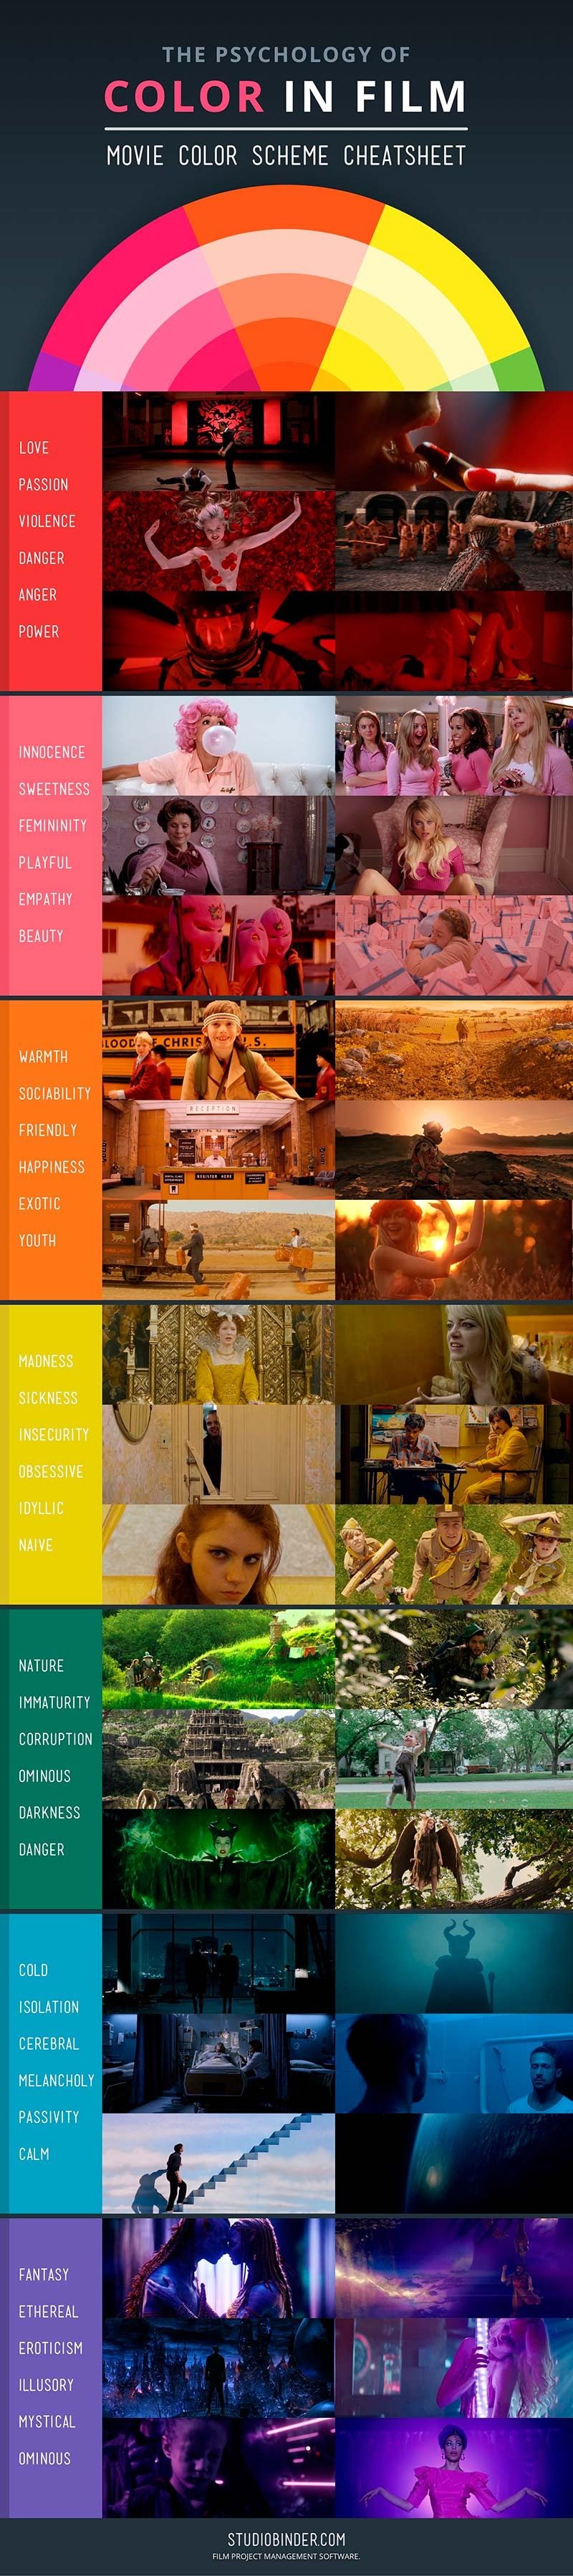 The Color Psychology of Film #Infographic